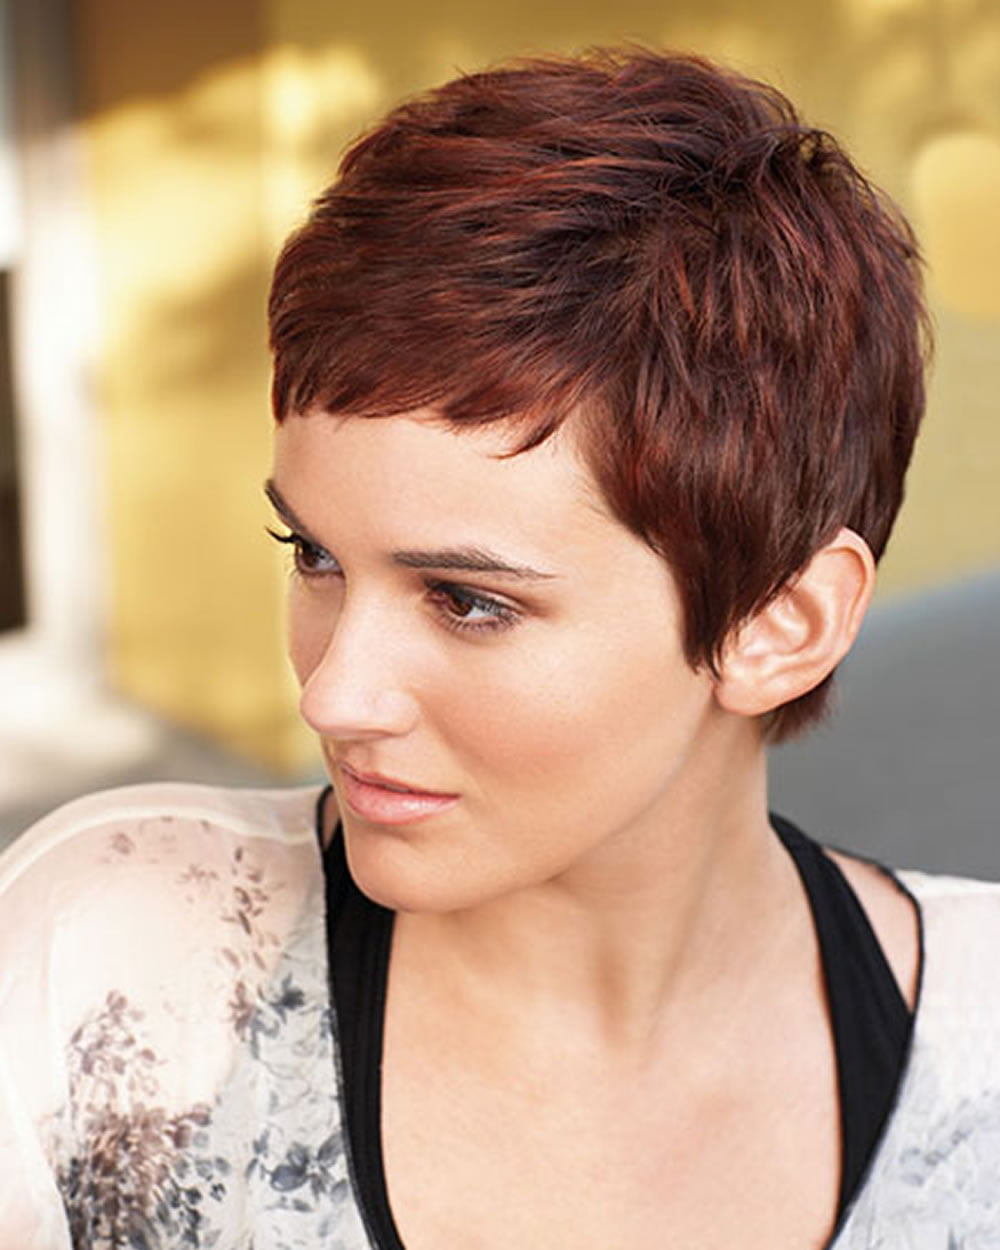 Feminine Short Hairstyles And Very Short Pixie Hair Colors